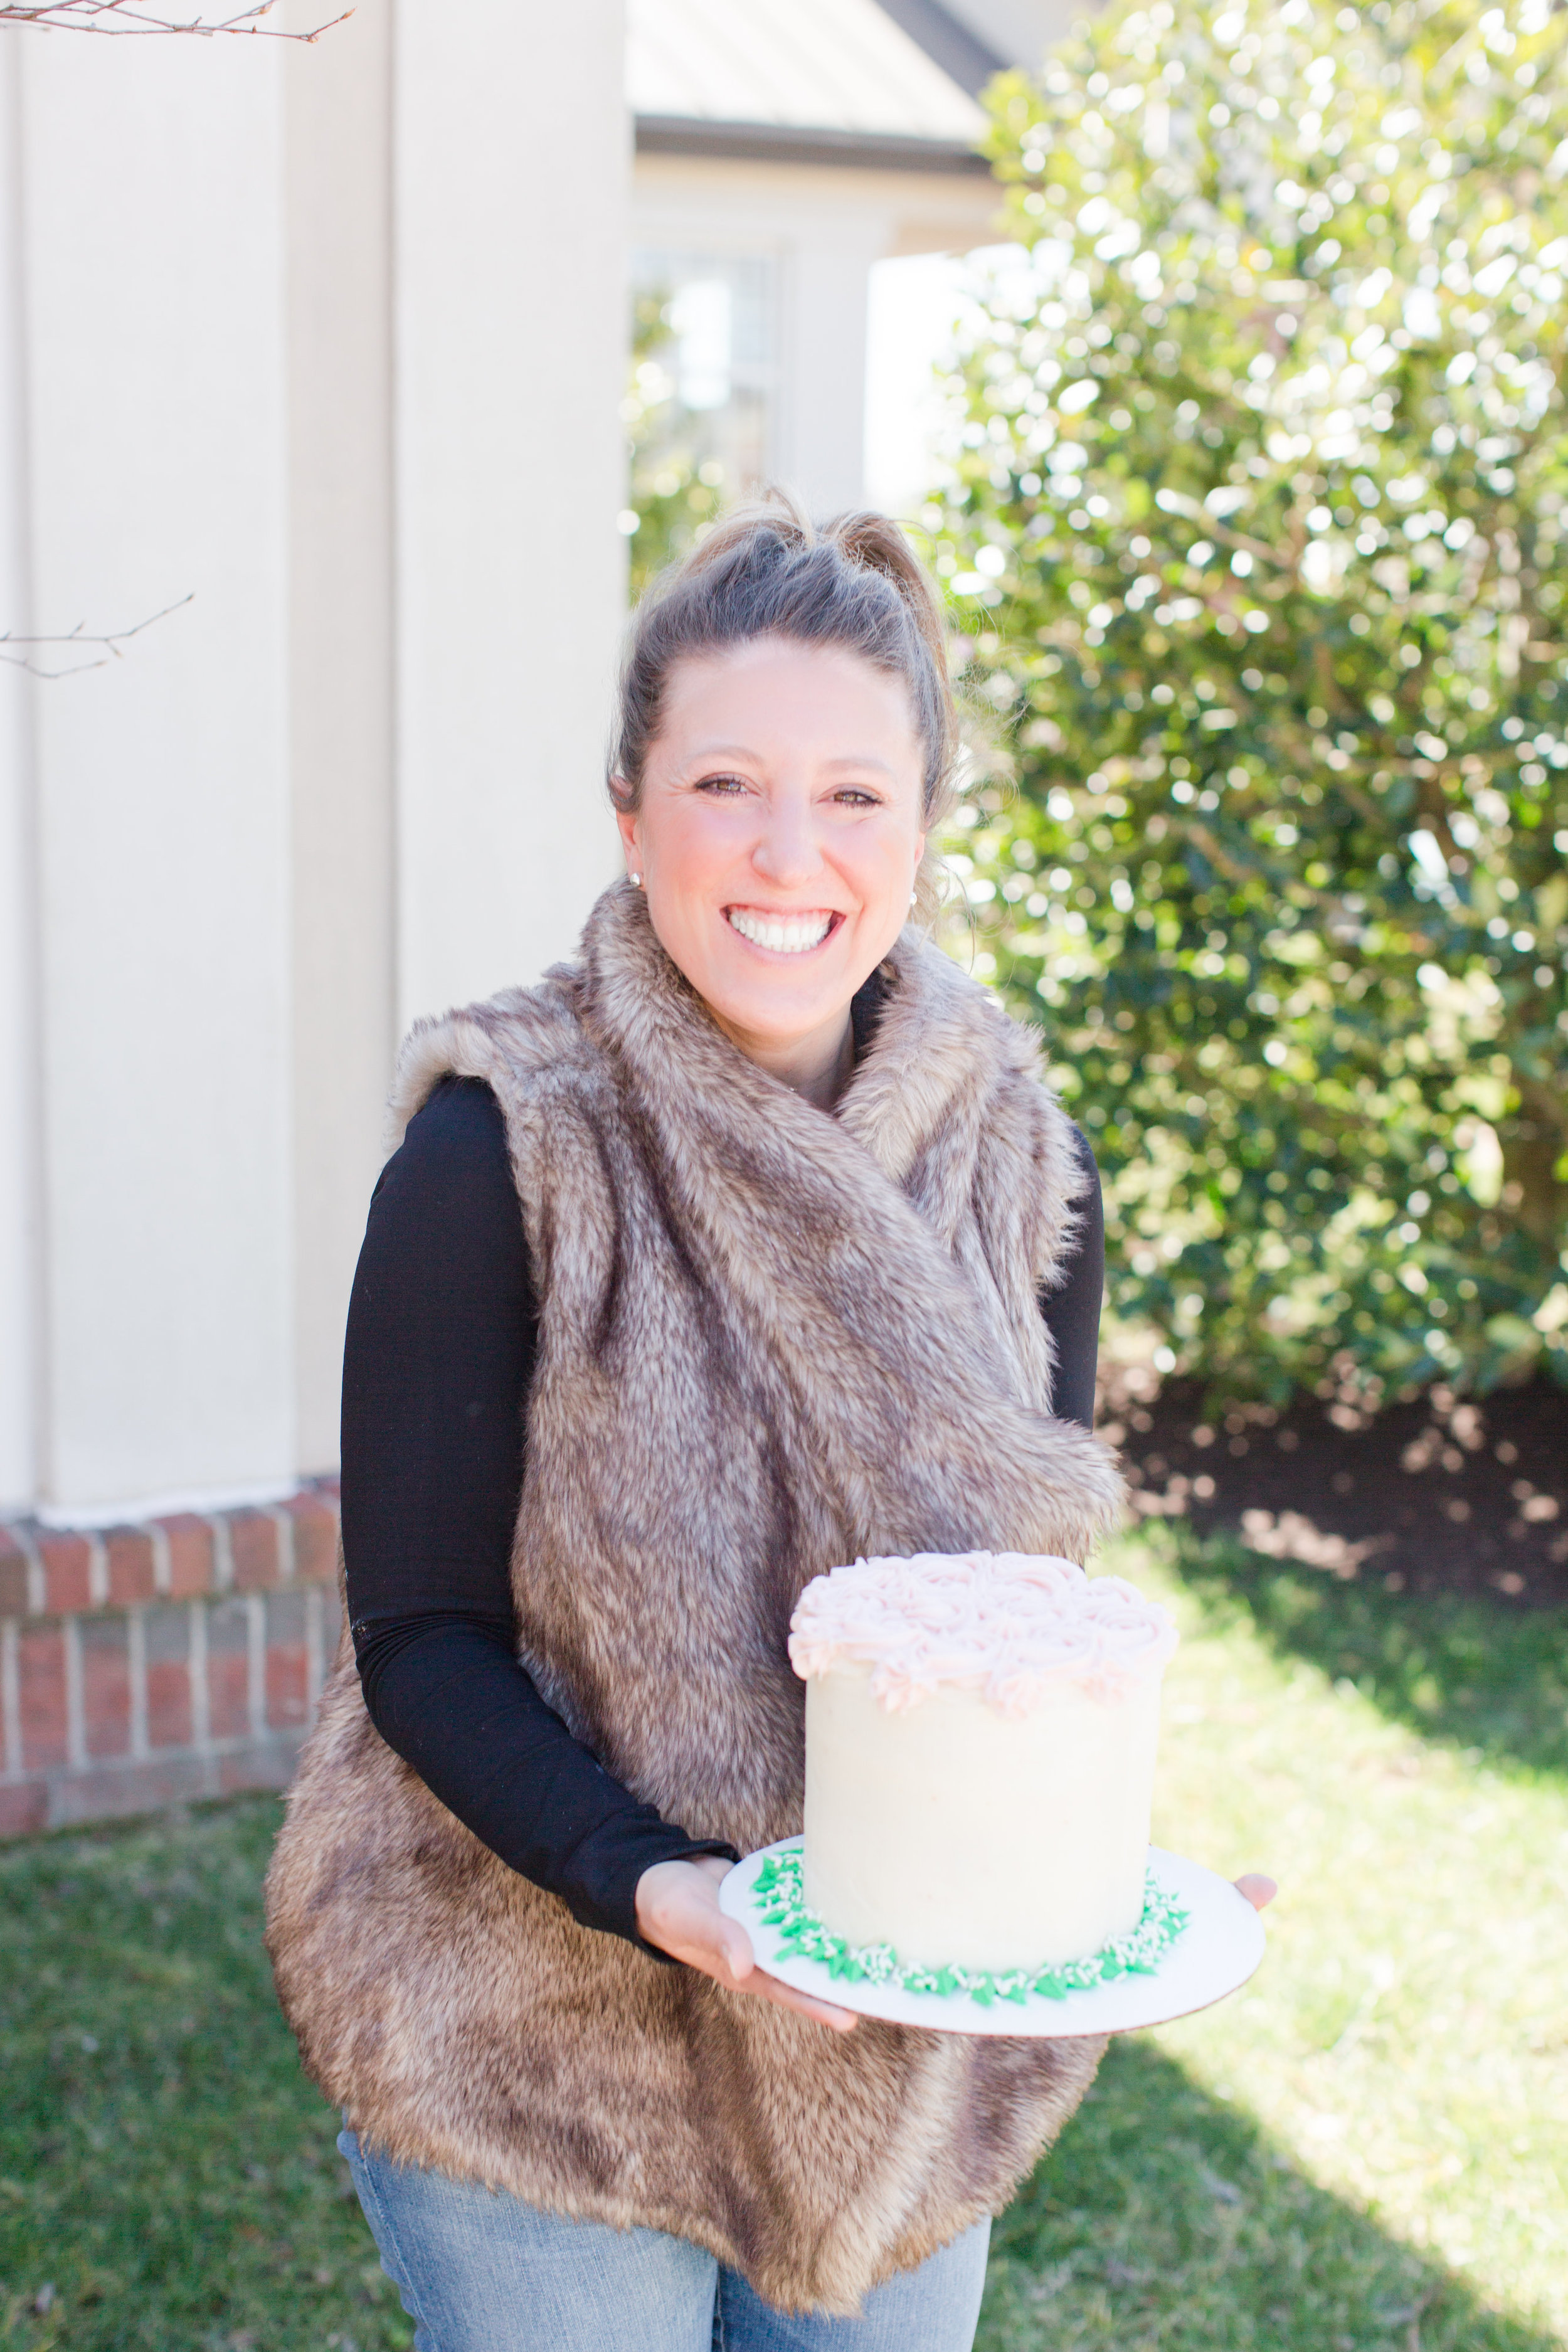 i did it! me and my beautiful gluten free cake that is now in my freezer